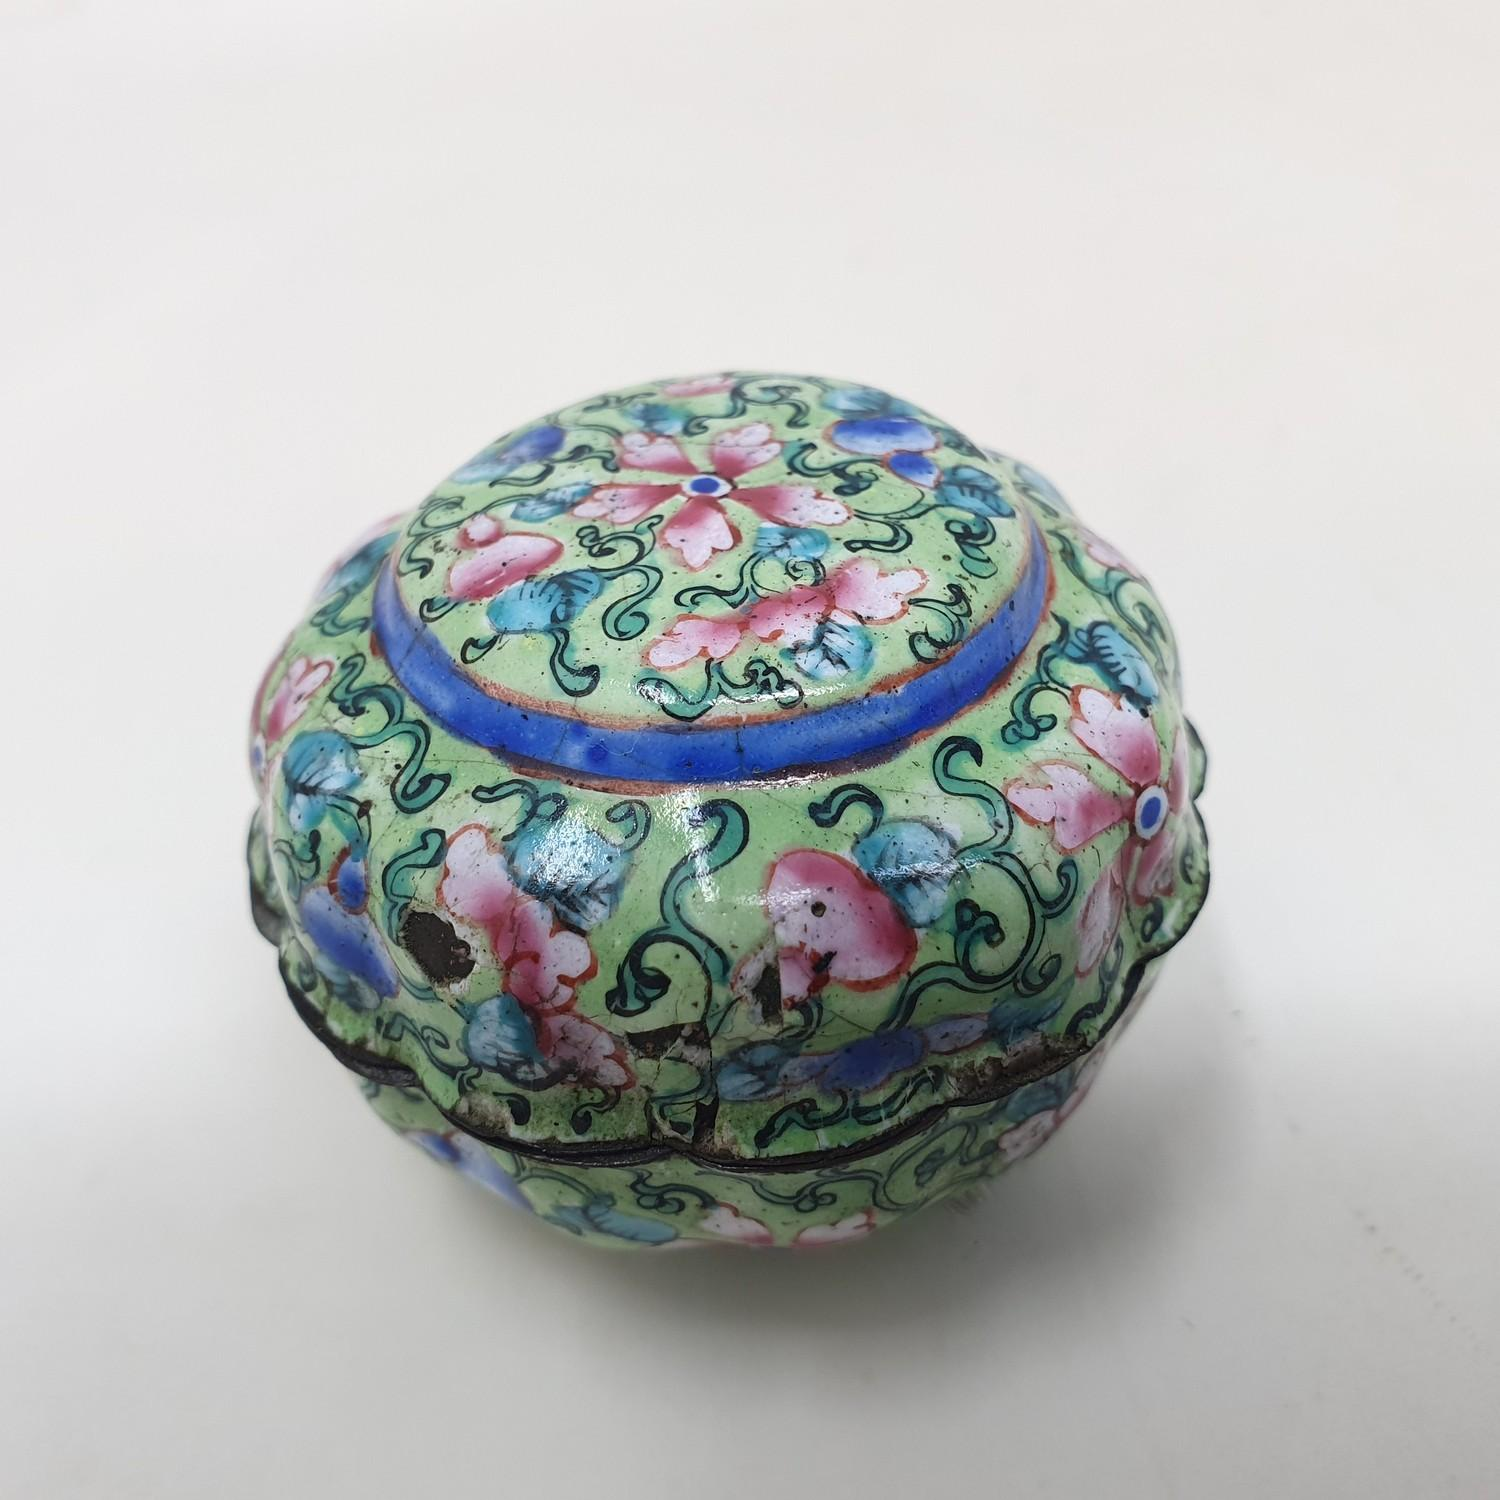 A Canton enamel pot and cover, decorated flowers on a green ground, 3 cm diameter